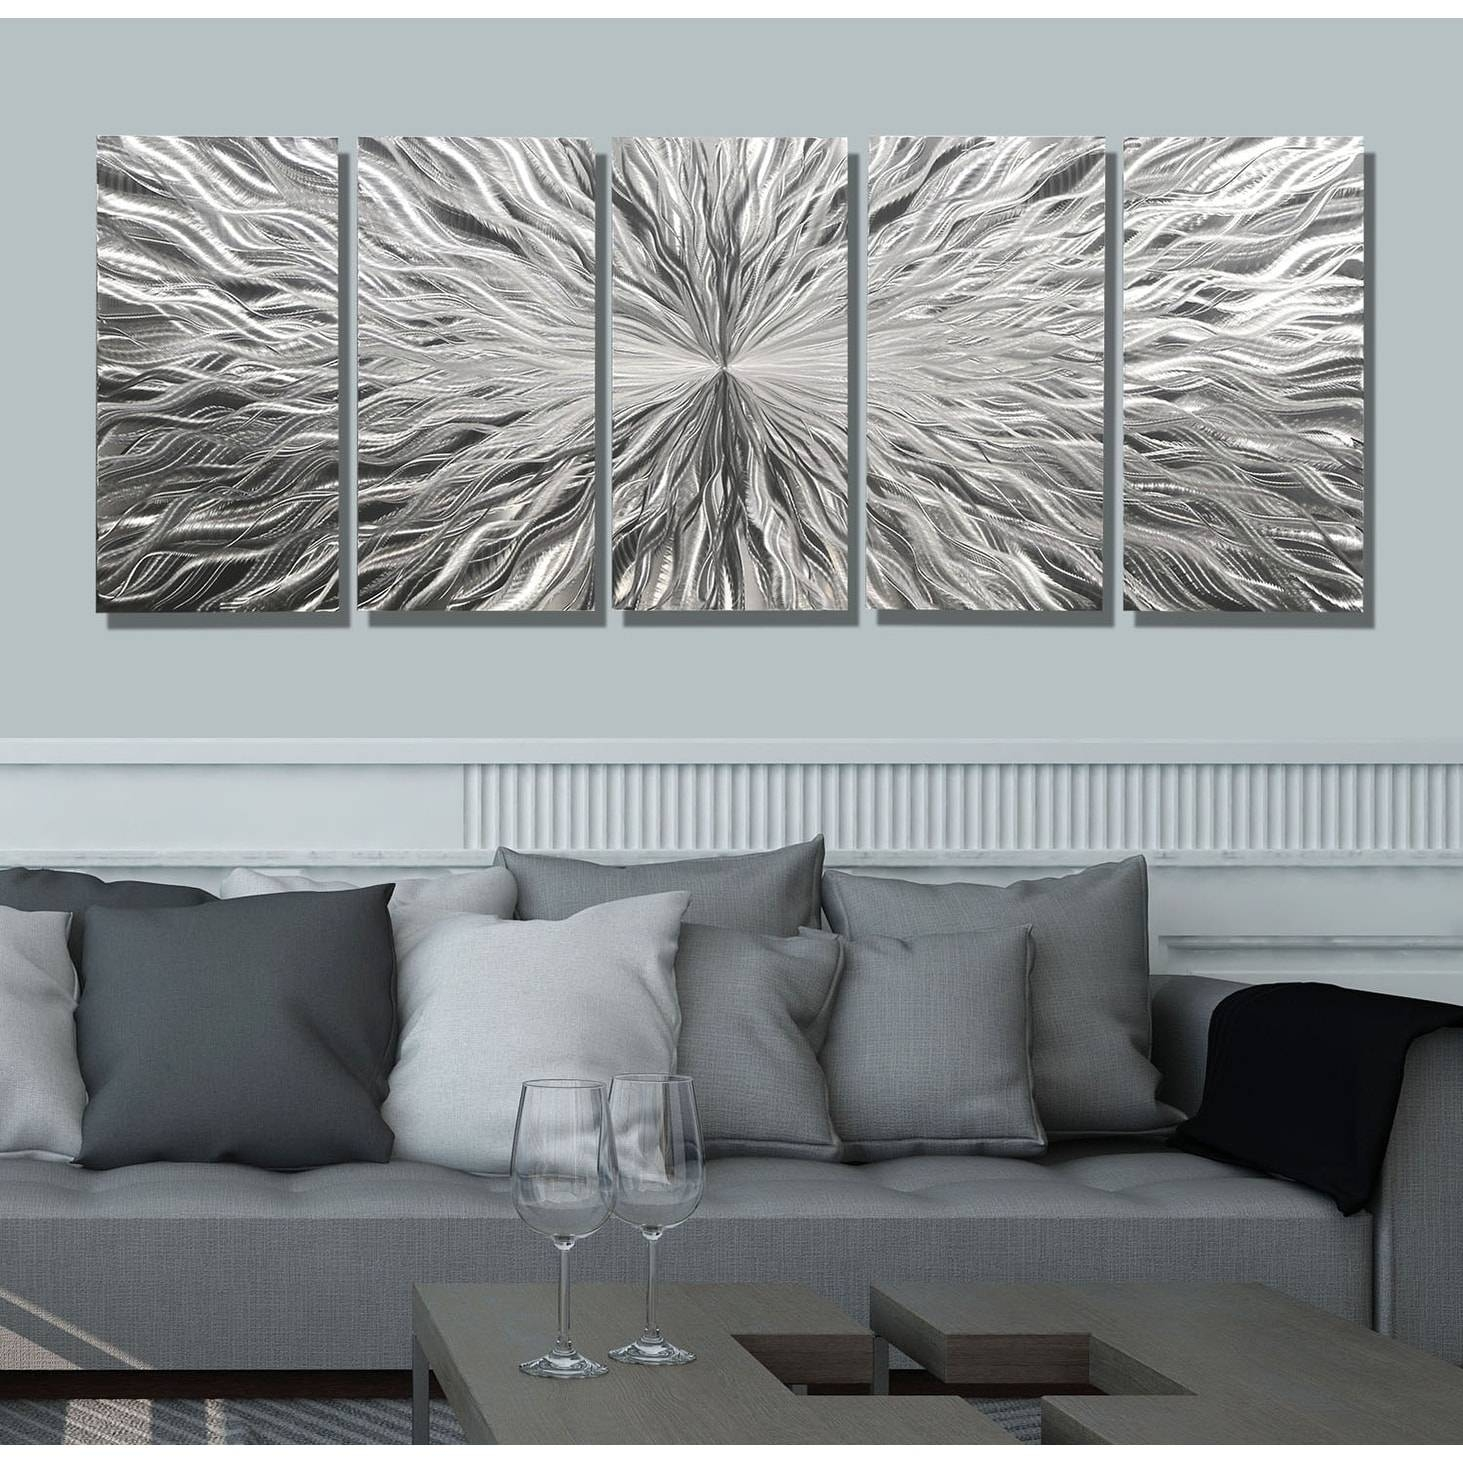 Statements2000 Silver 5 Panel Modern Metal Wall Art Sculpture With Regard To Latest Modern Metal Wall Art (View 3 of 20)